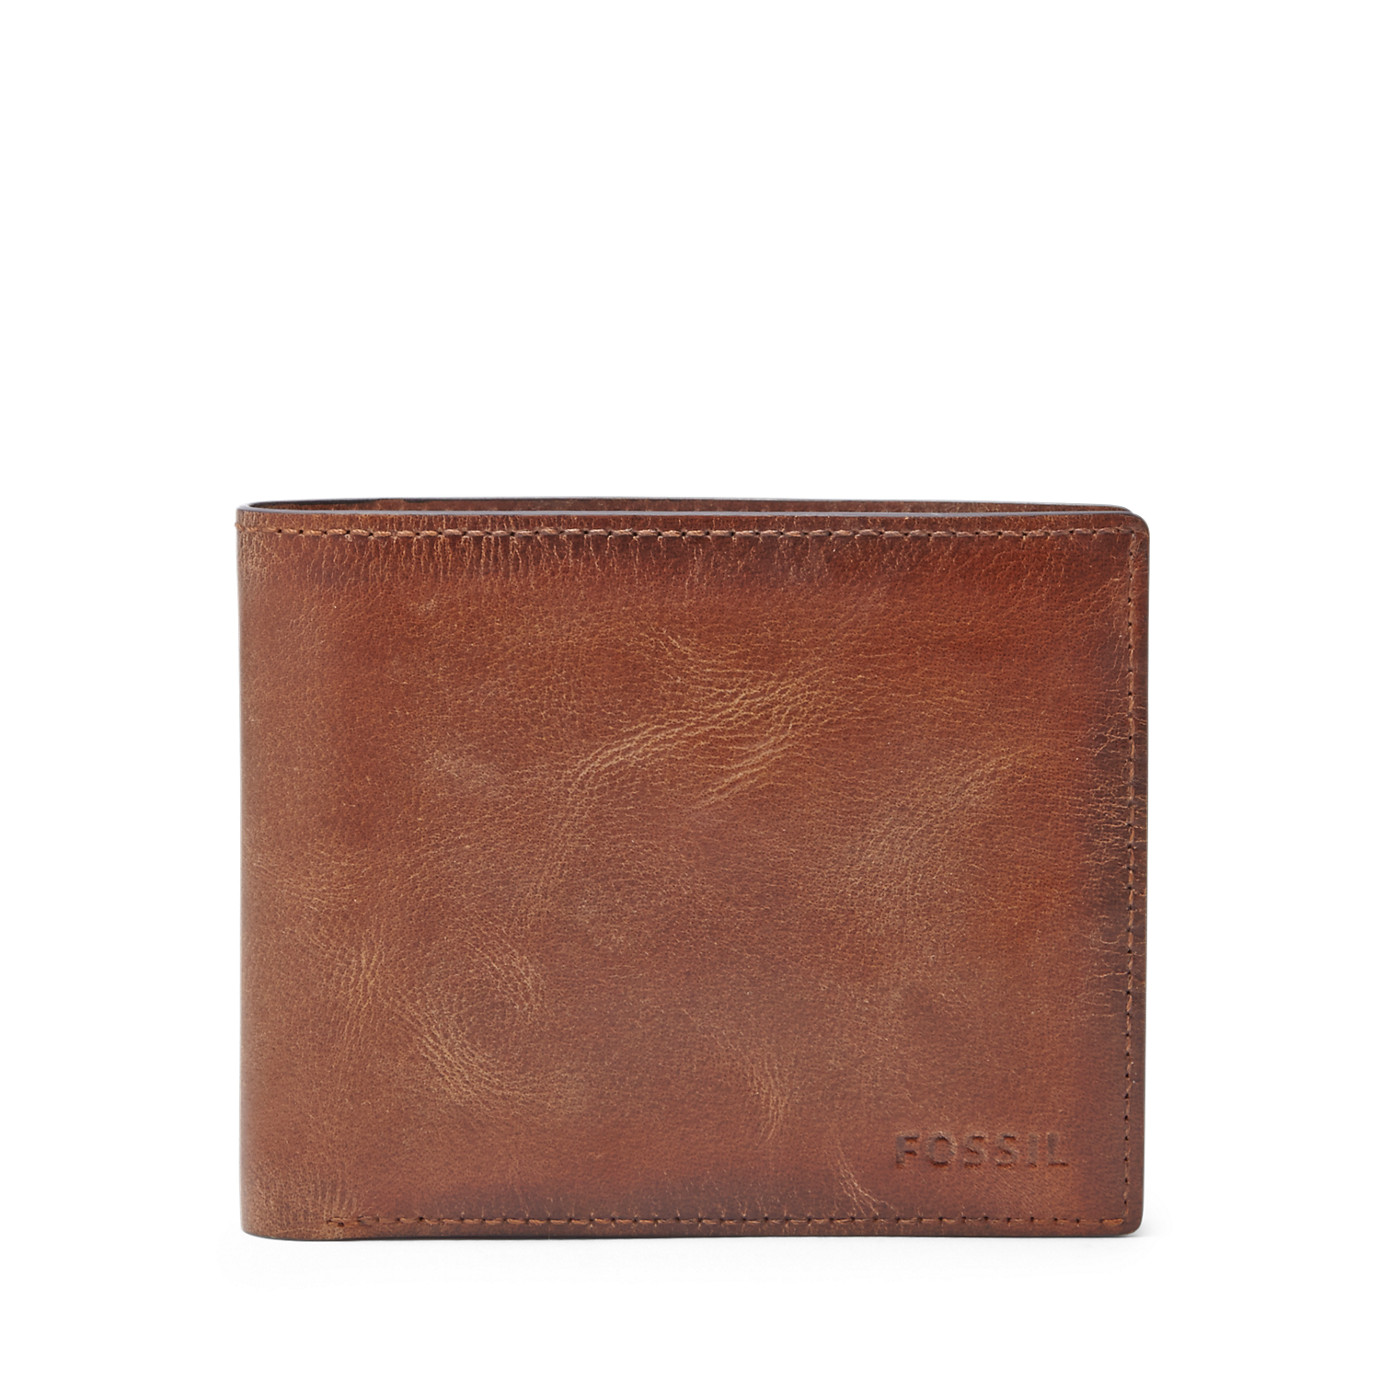 Derrick Large Coin Pocket Bifold